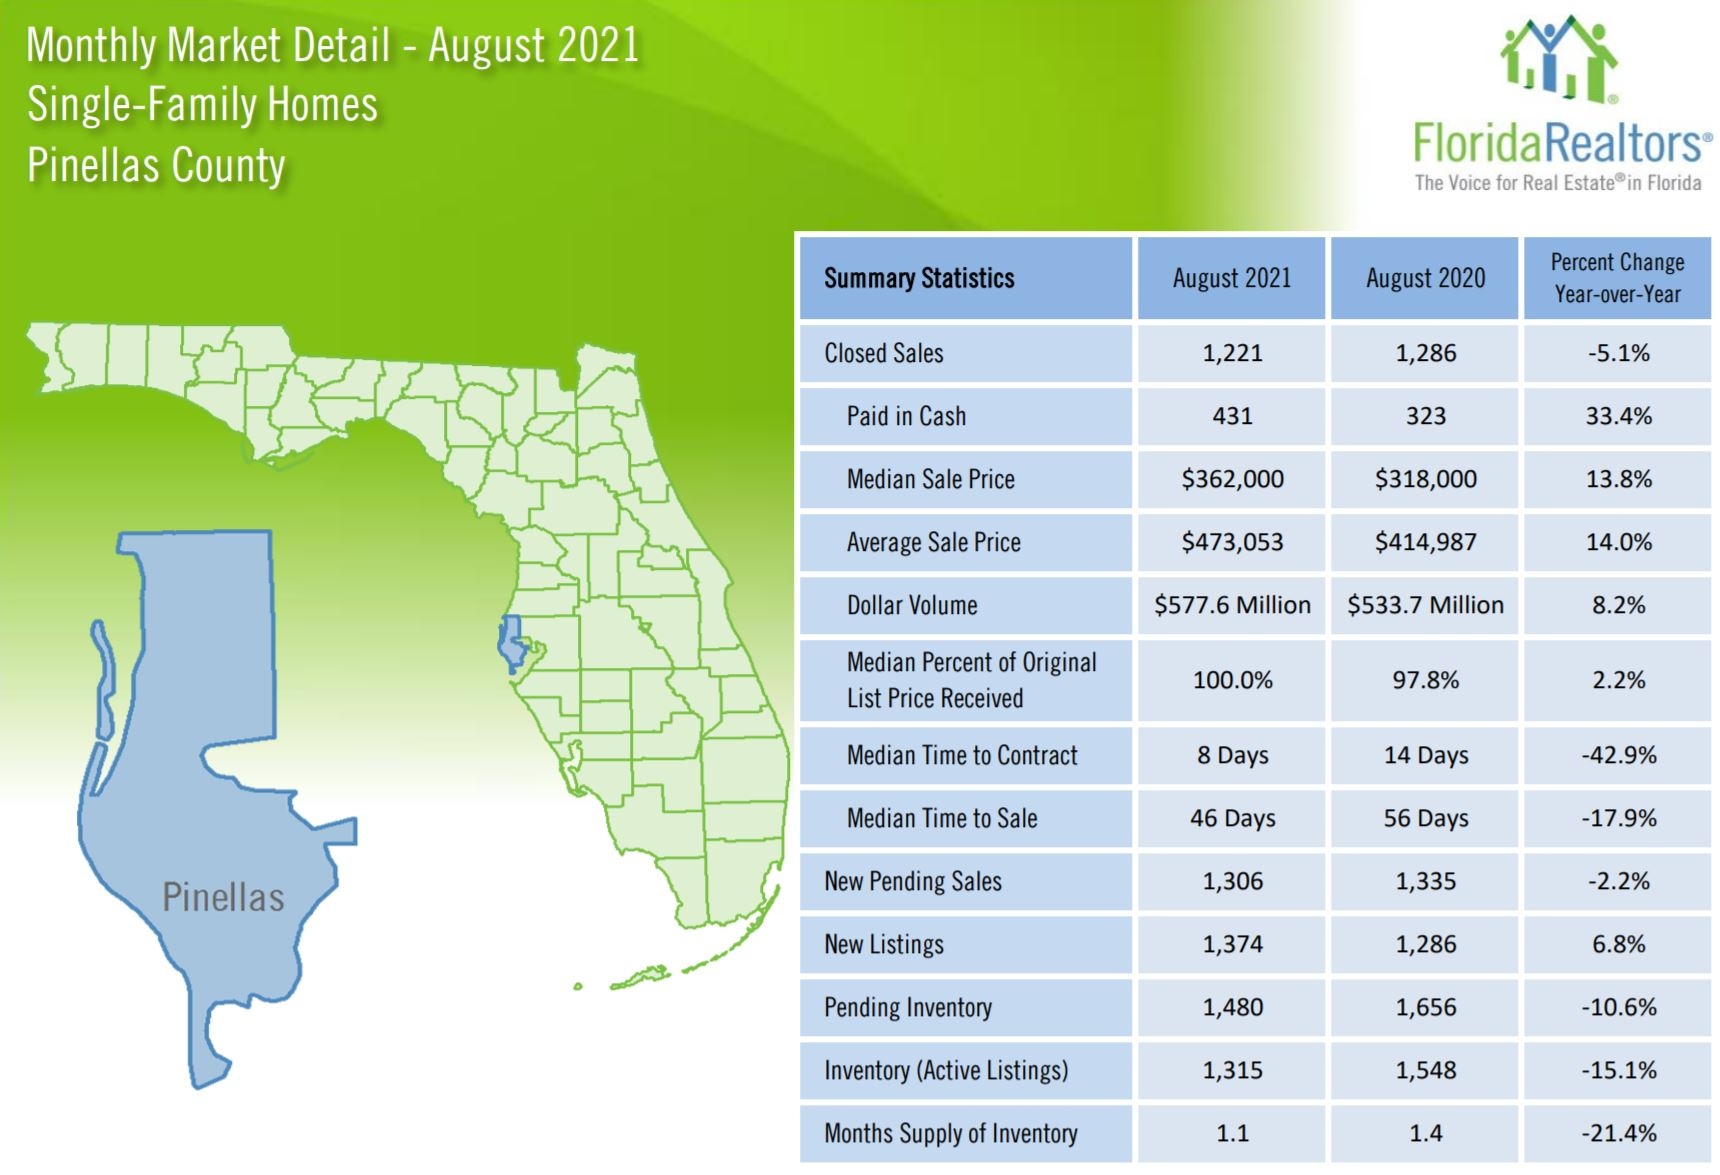 Single Family Home Stats for Pinellas County Aug 2021